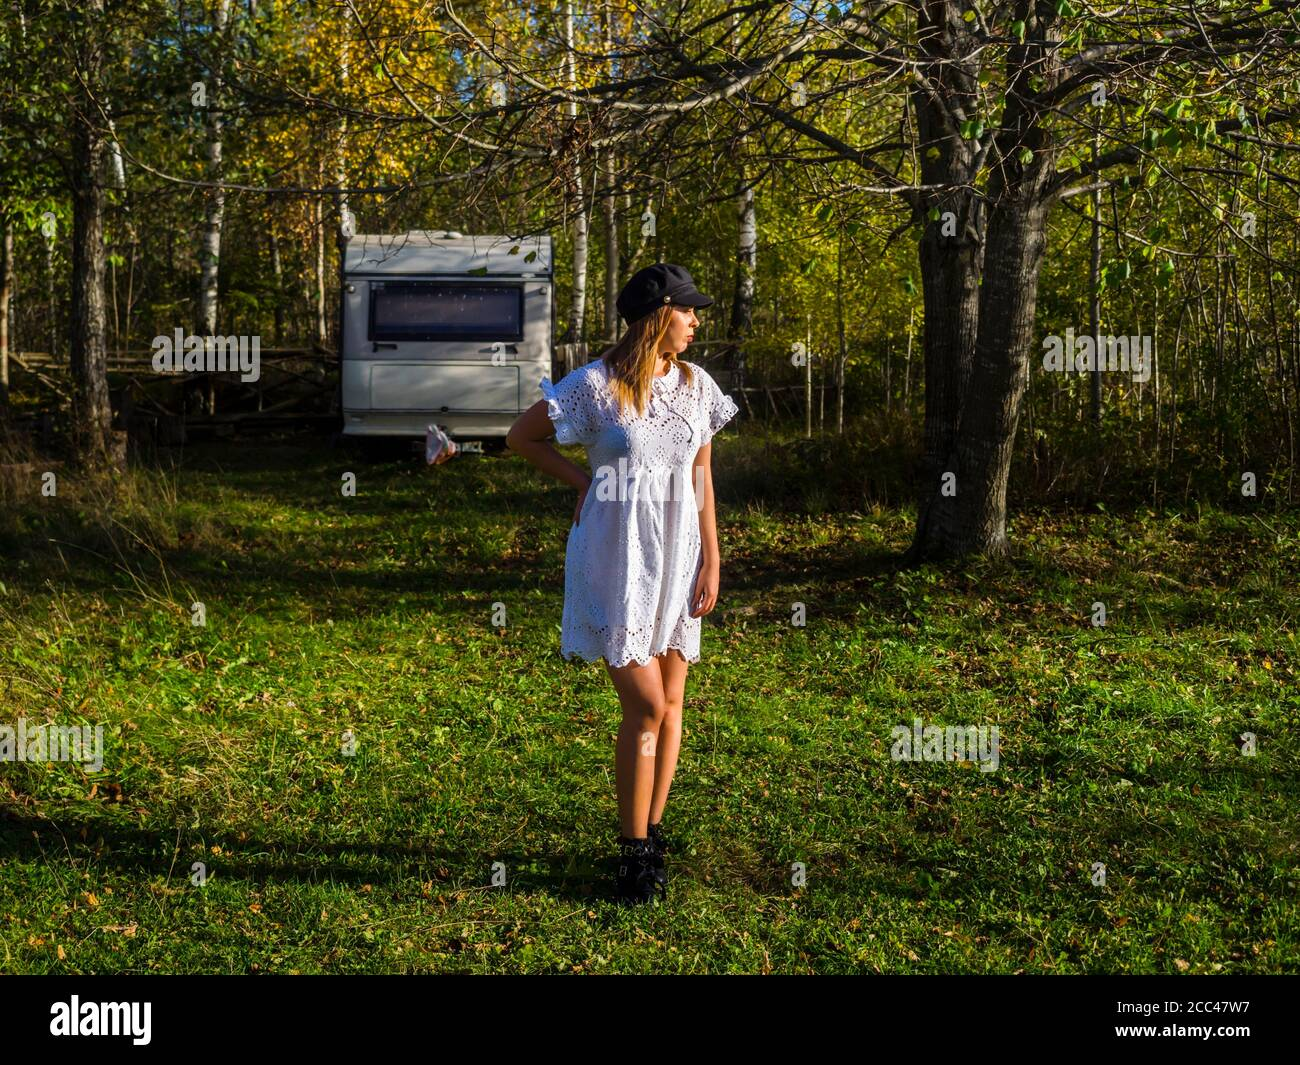 Teengirl standing in nature before caravan can travel travelling sleeping living vehicle looking aside away serious wearing short White robe clothing Stock Photo